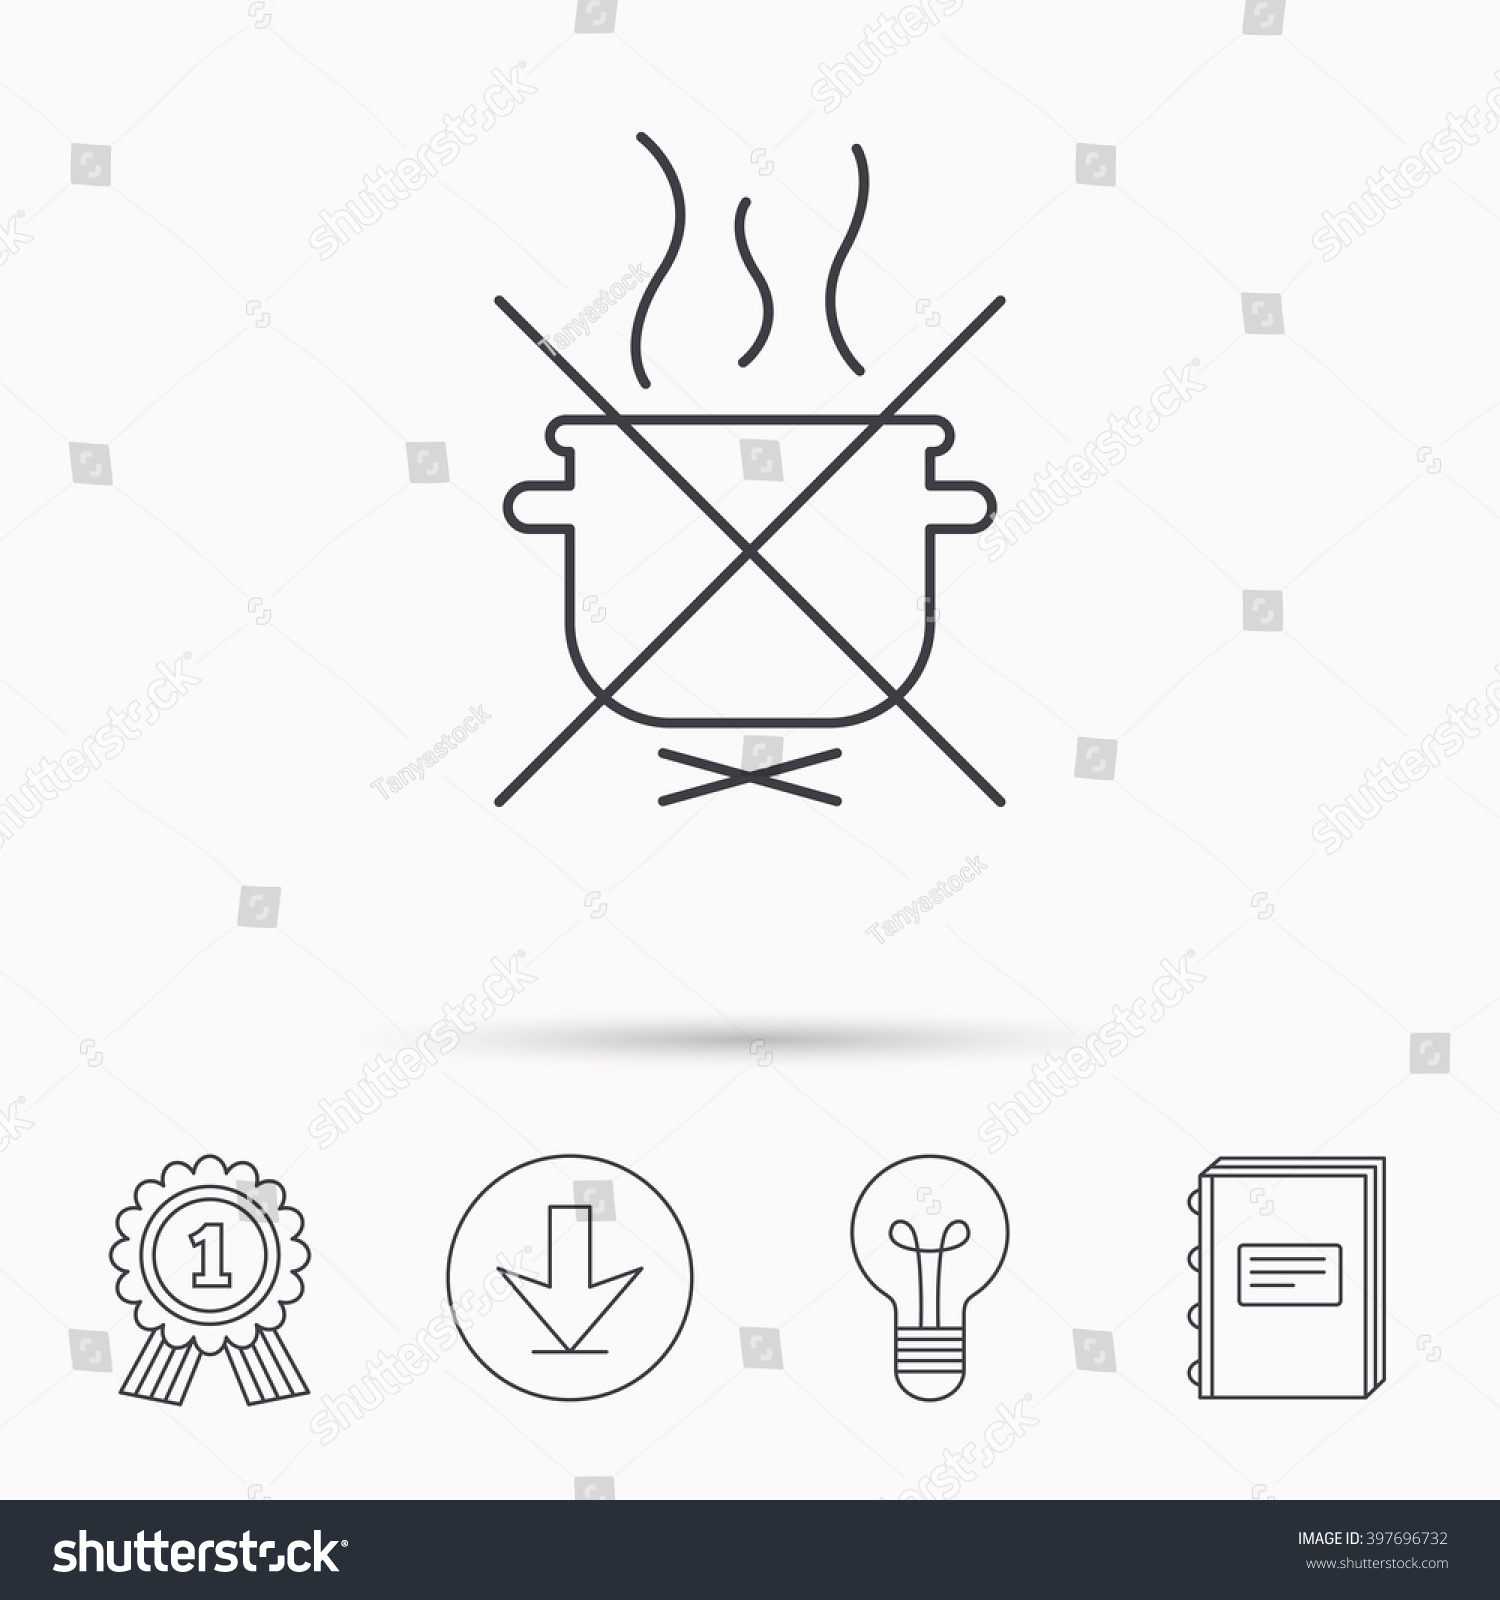 hight resolution of boiling saucepan icon do not boil water sign cooking manual attenction symbol download